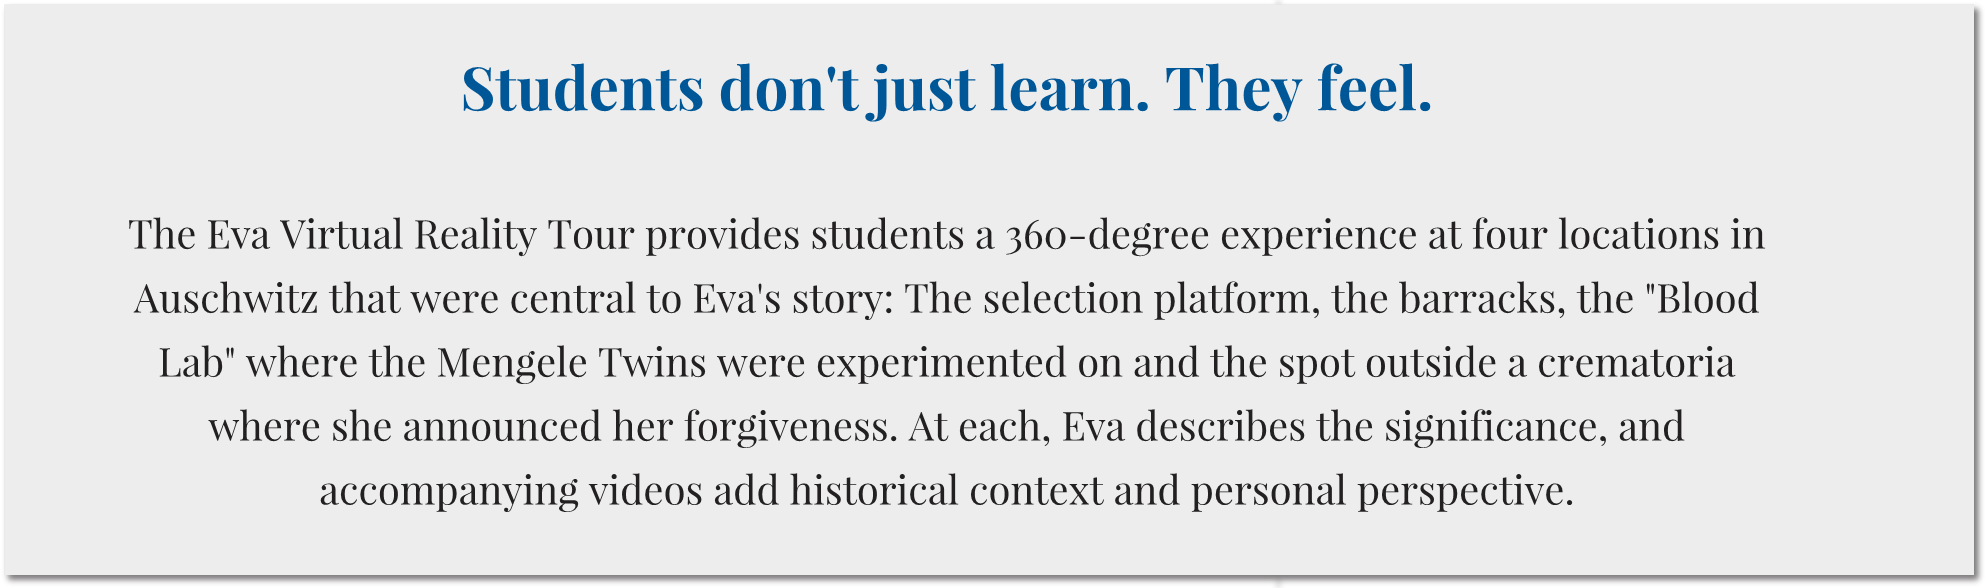 "Students don't just learn. They feel.    The Eva Virtual Reality Tour provides students a 360-degree experience at four locations in Auschwitz that were central to Eva's story: The selection platform, the barracks, the ""Blood Lab"" where the Mengele Twins were experimented on and the spot outside a crematoria where she announced her forgiveness. At each, Eva describes the significance, and accompanying videos add historical context and personal perspective."